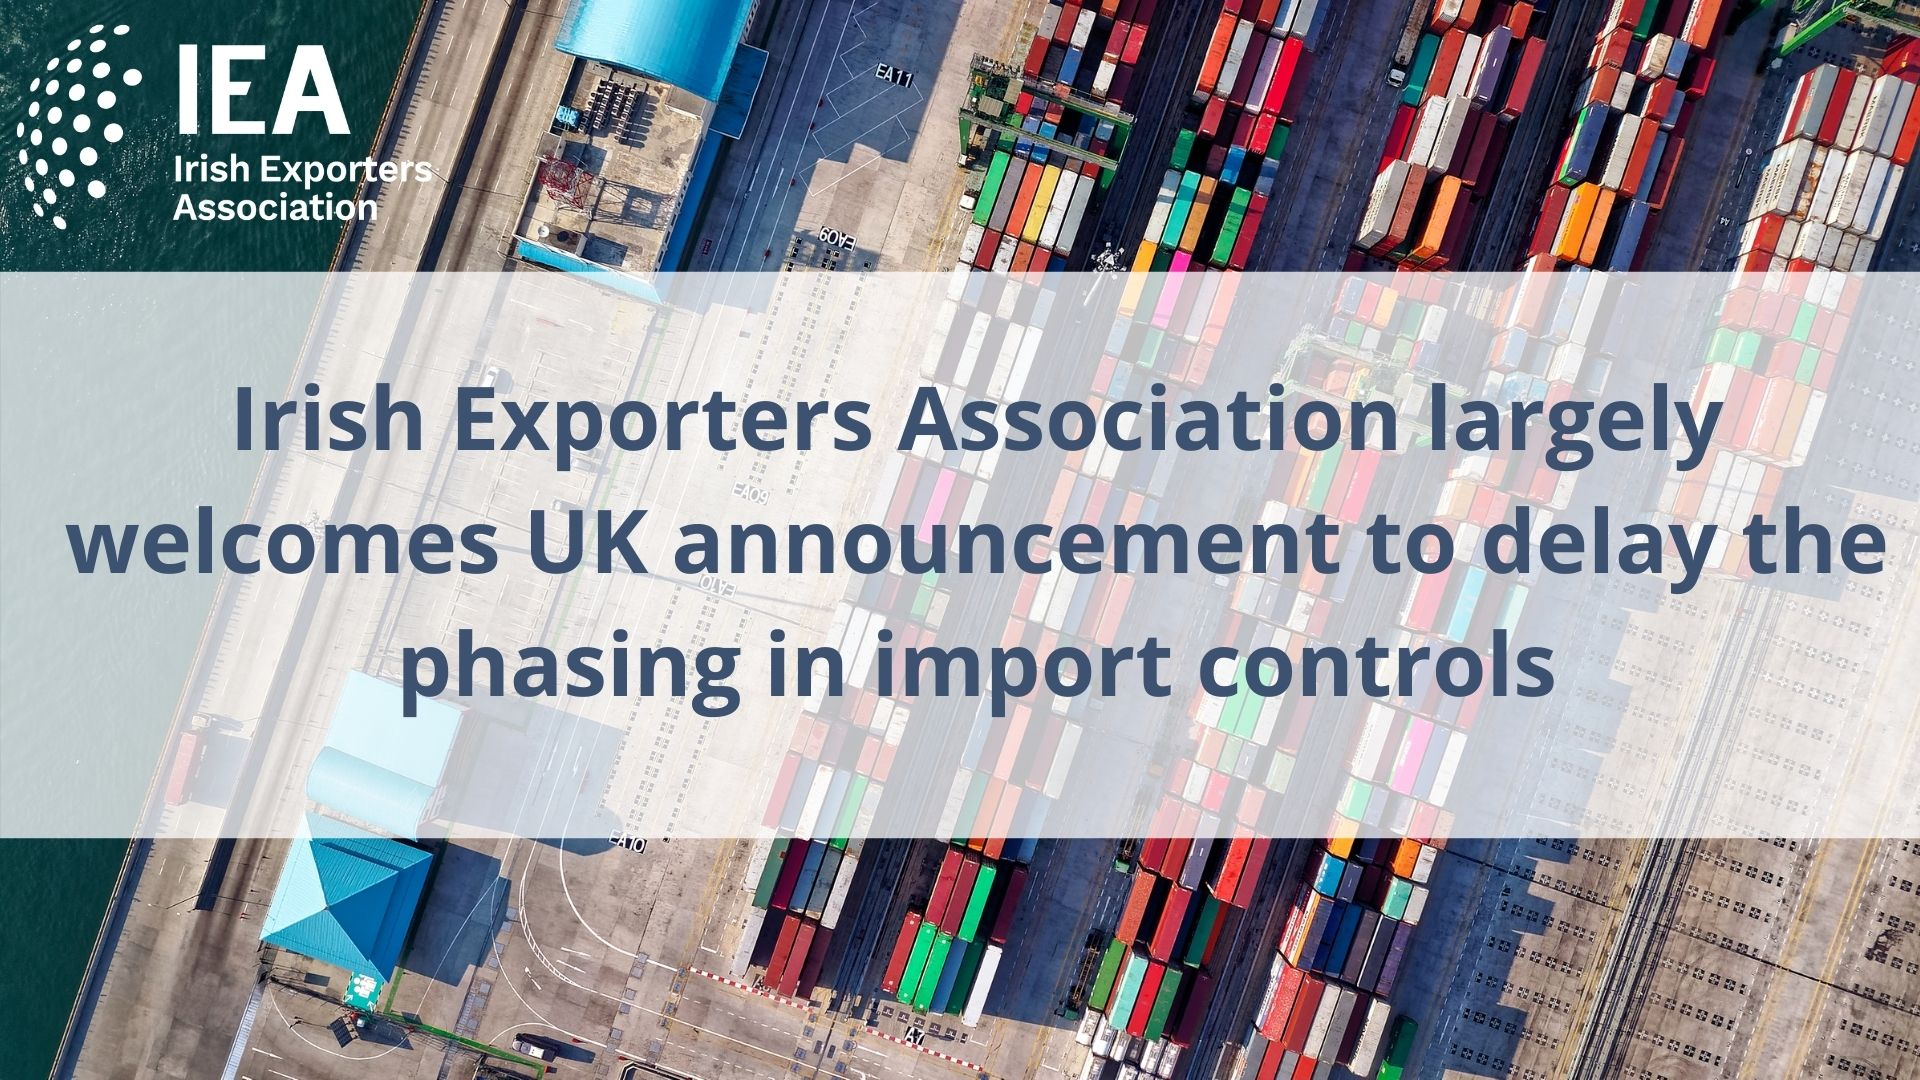 Irish Exporters Association largely welcomes UK announcement to delay phasing in import controls